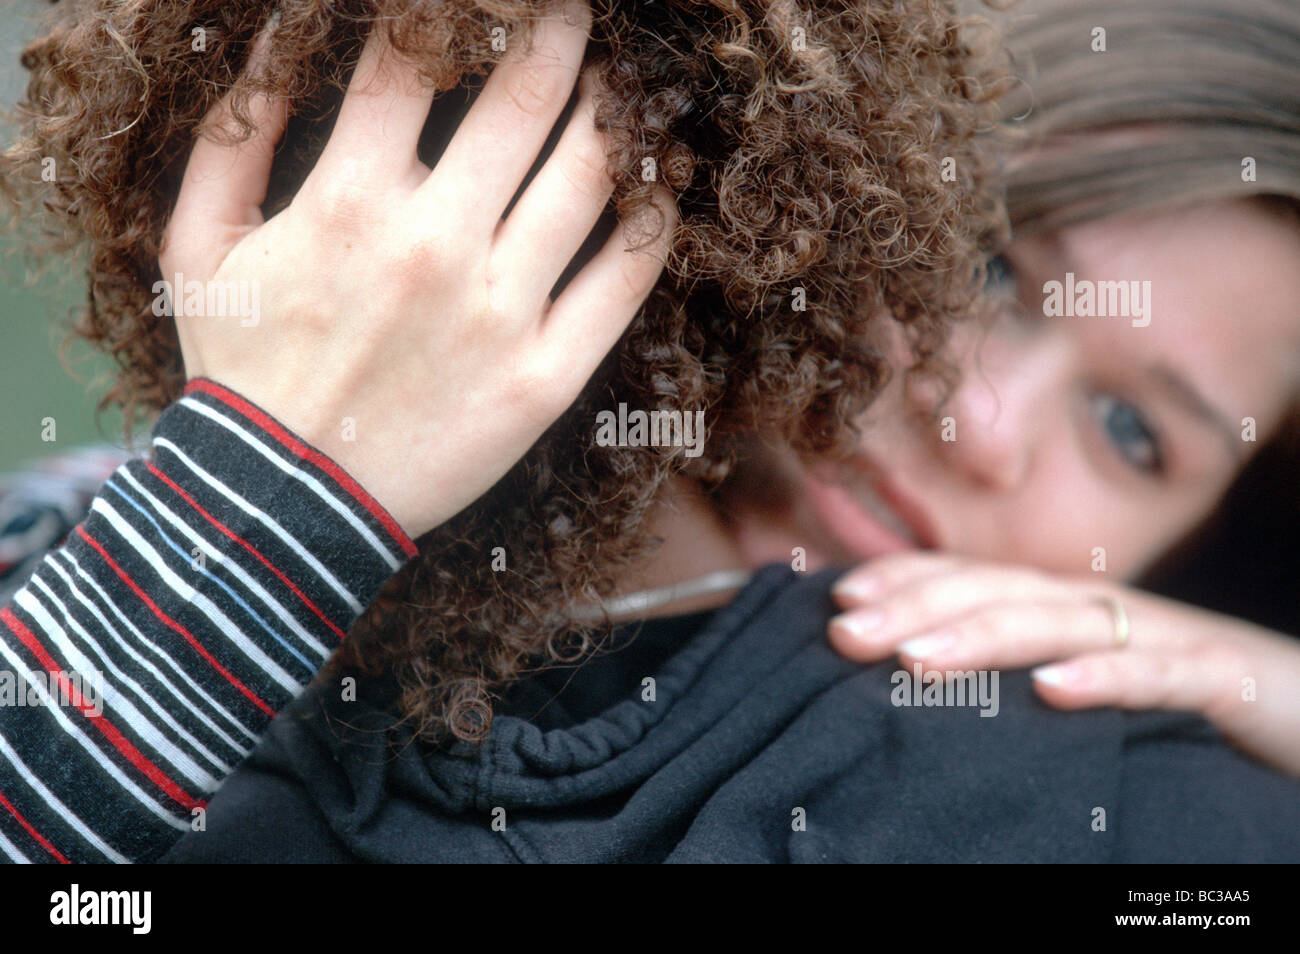 Desperate young woman in love with immigrant, close up  SerieCVS117005 - Stock Image